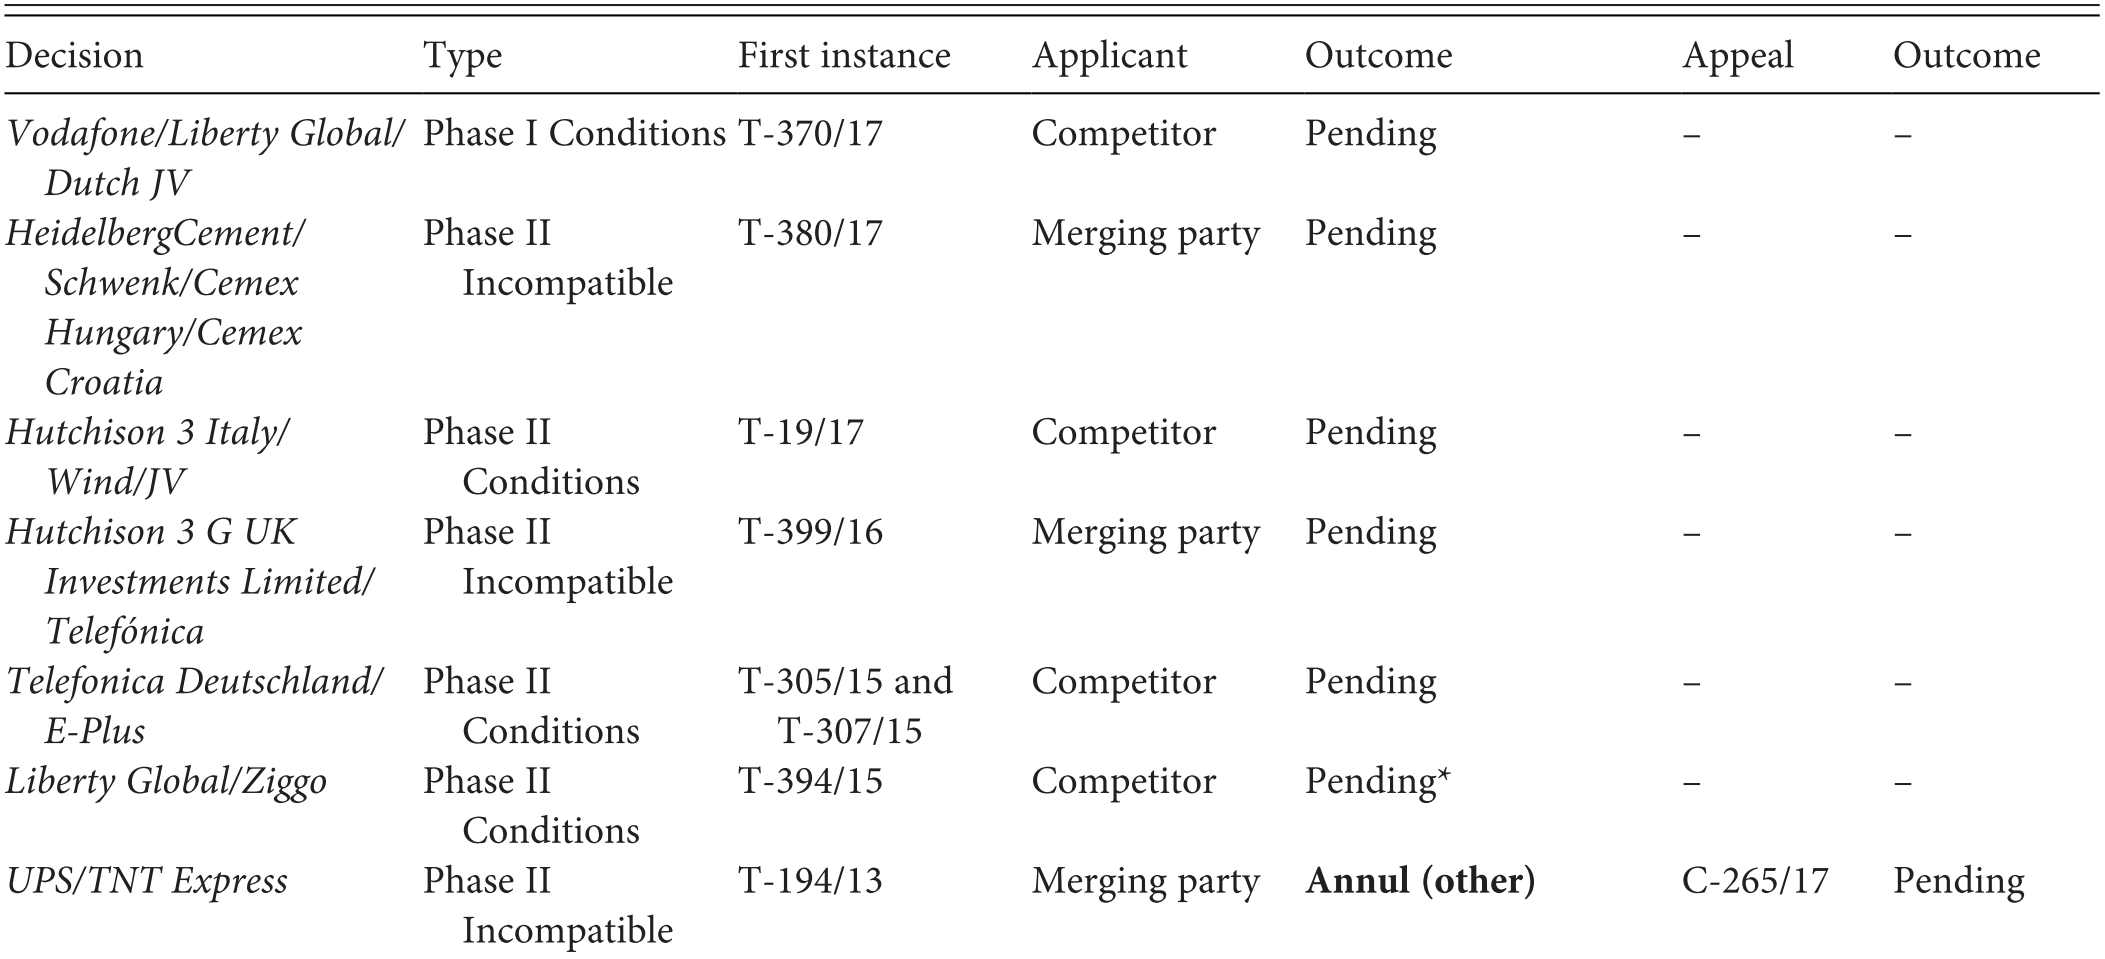 Analysis (Part II) - The Shaping of EU Competition Law